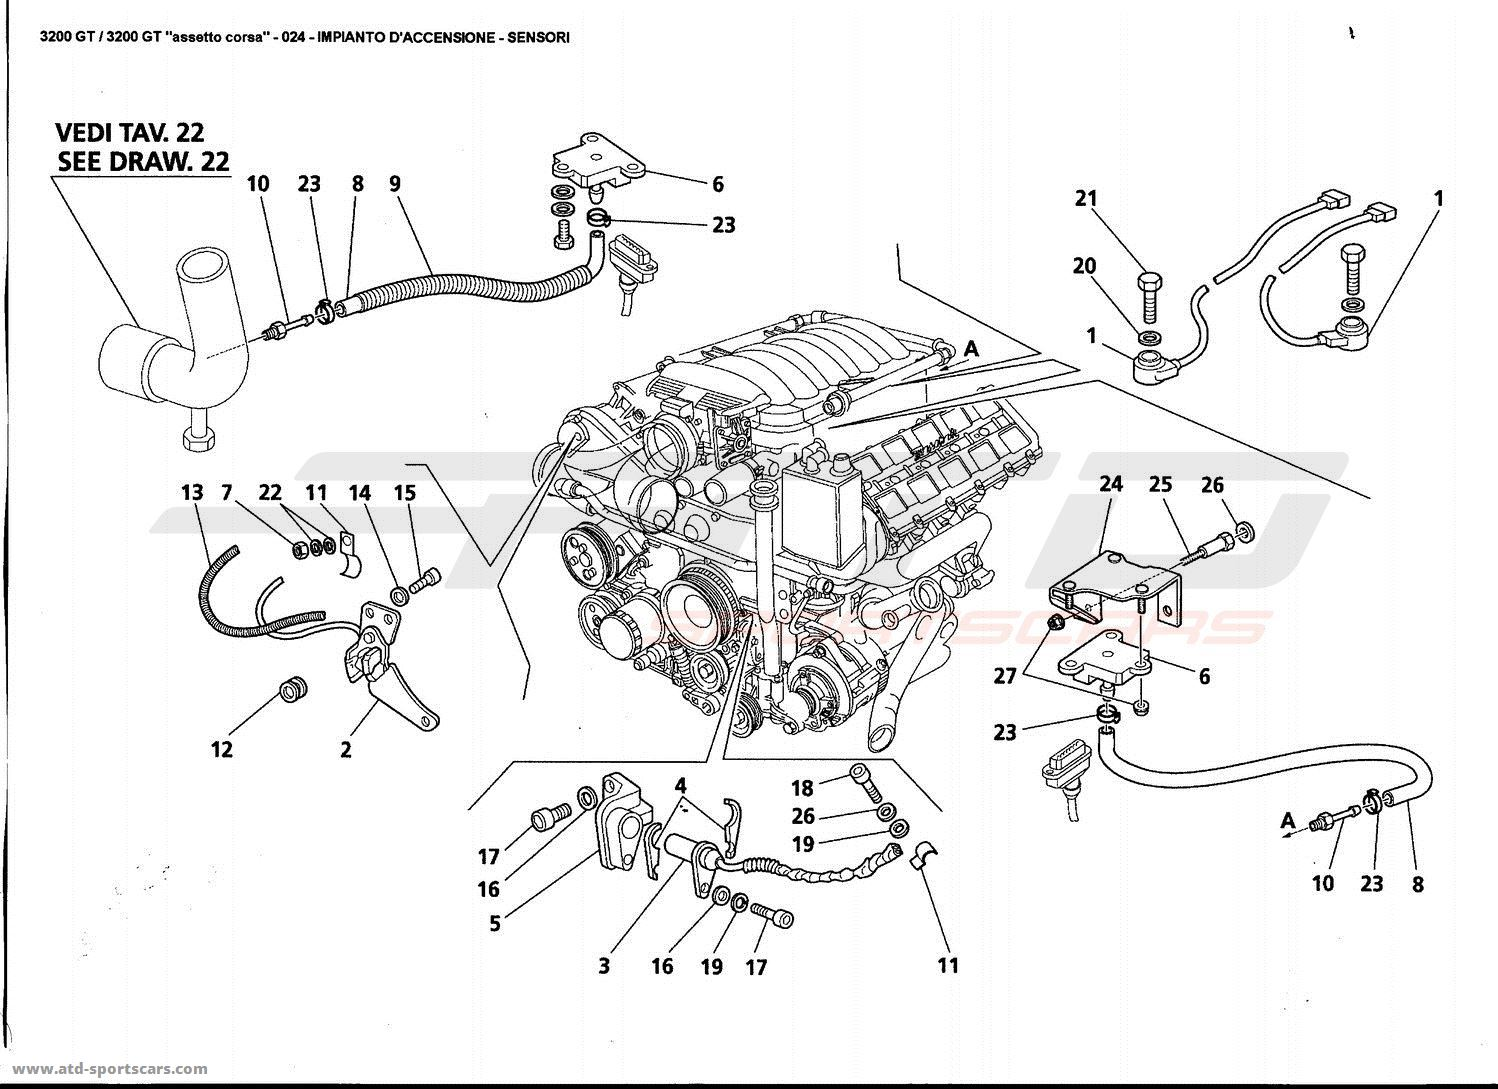 Maserati Gt Ignition System Sensors Parts At Atd Sportscars